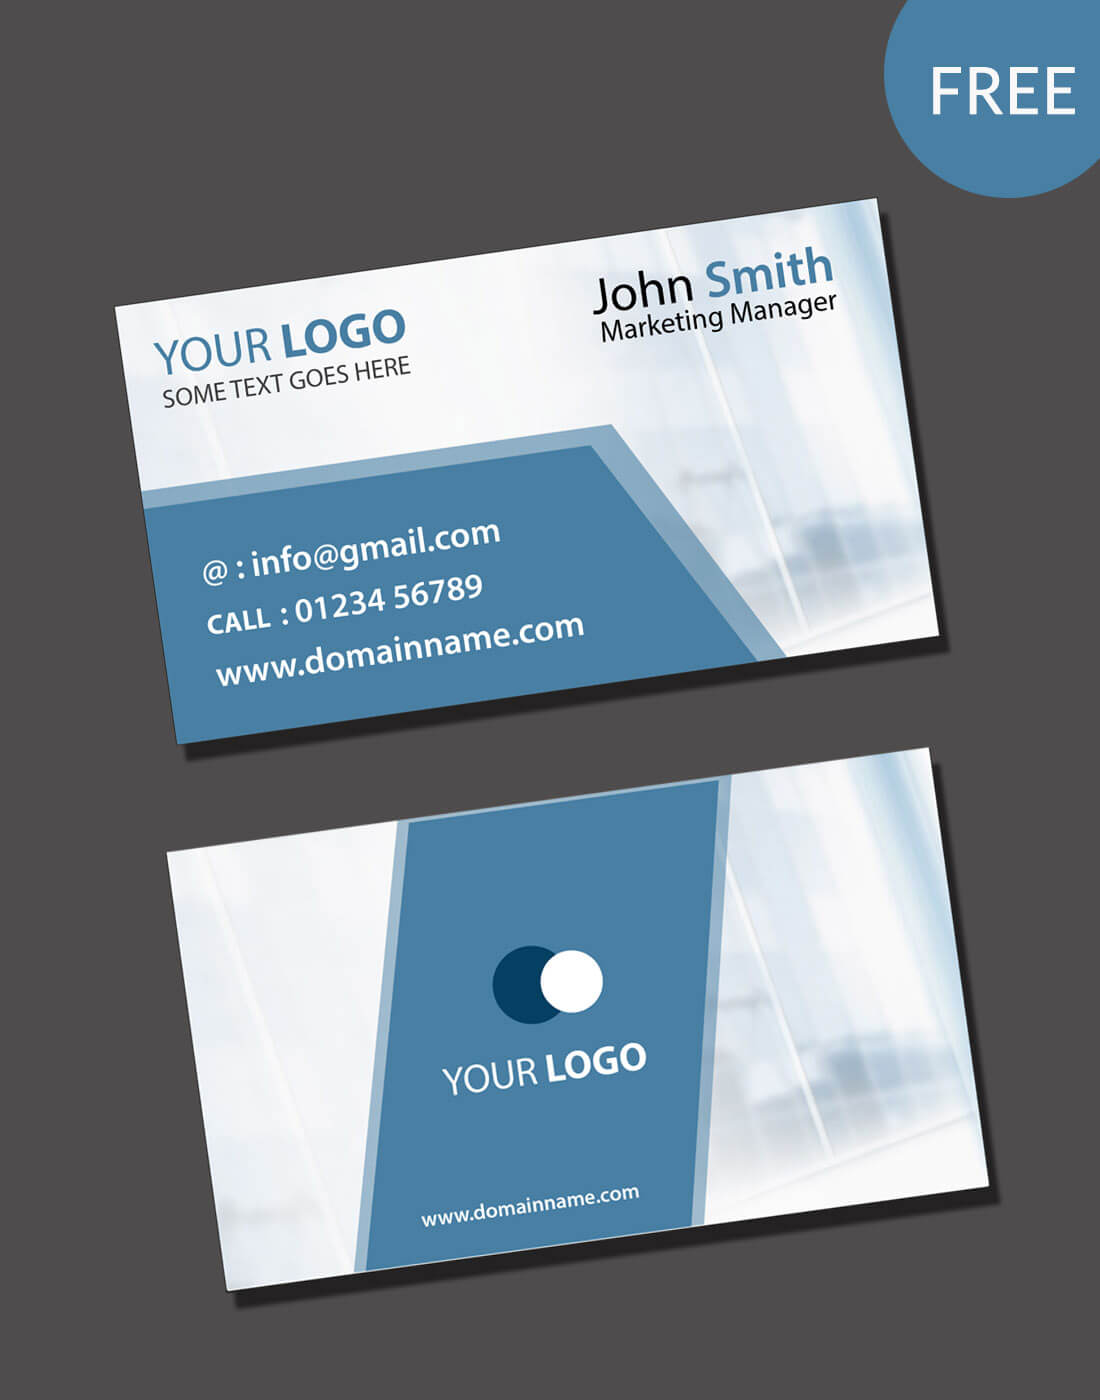 008 Template Ideas Visiting Card Psd Free Photoshop Business Intended For Call Card Templates